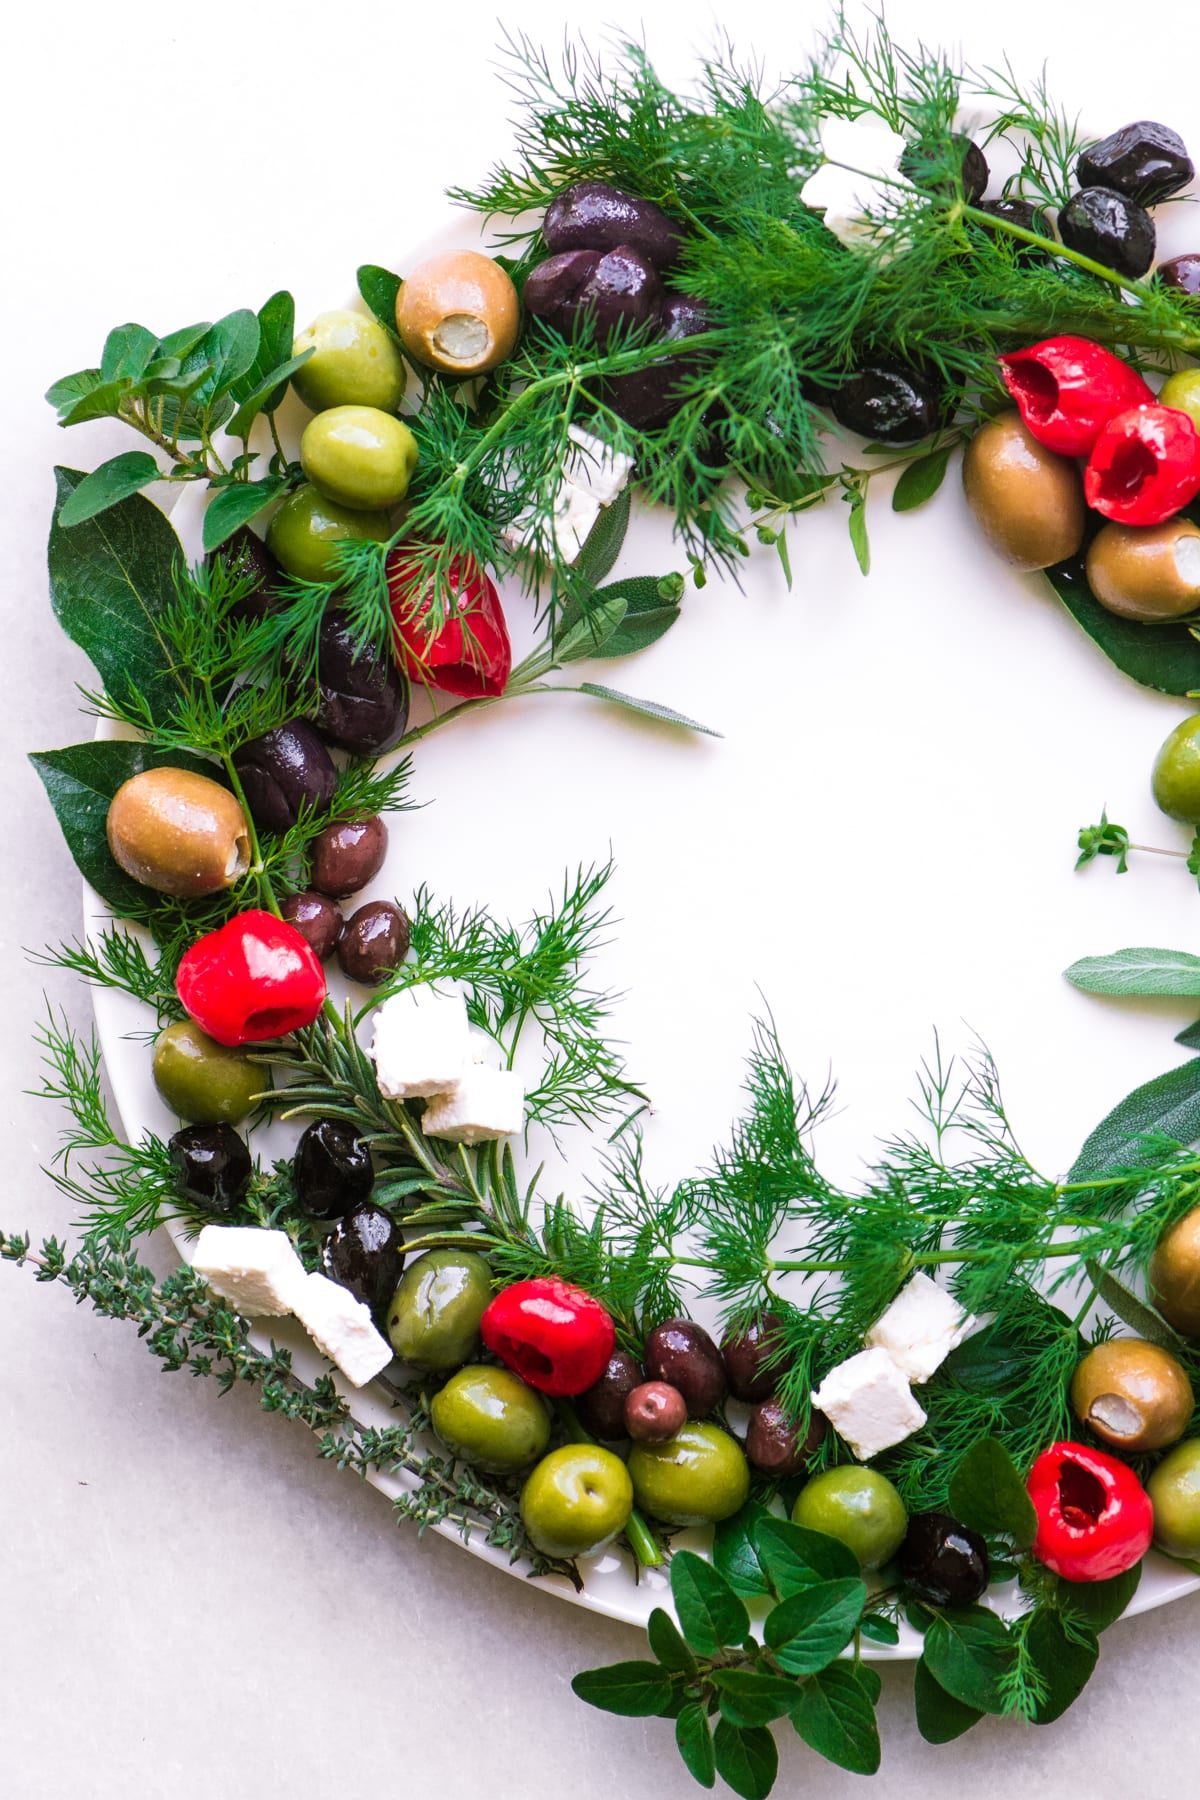 Olive and herb wreath appetizer on a white platter on a marble surface